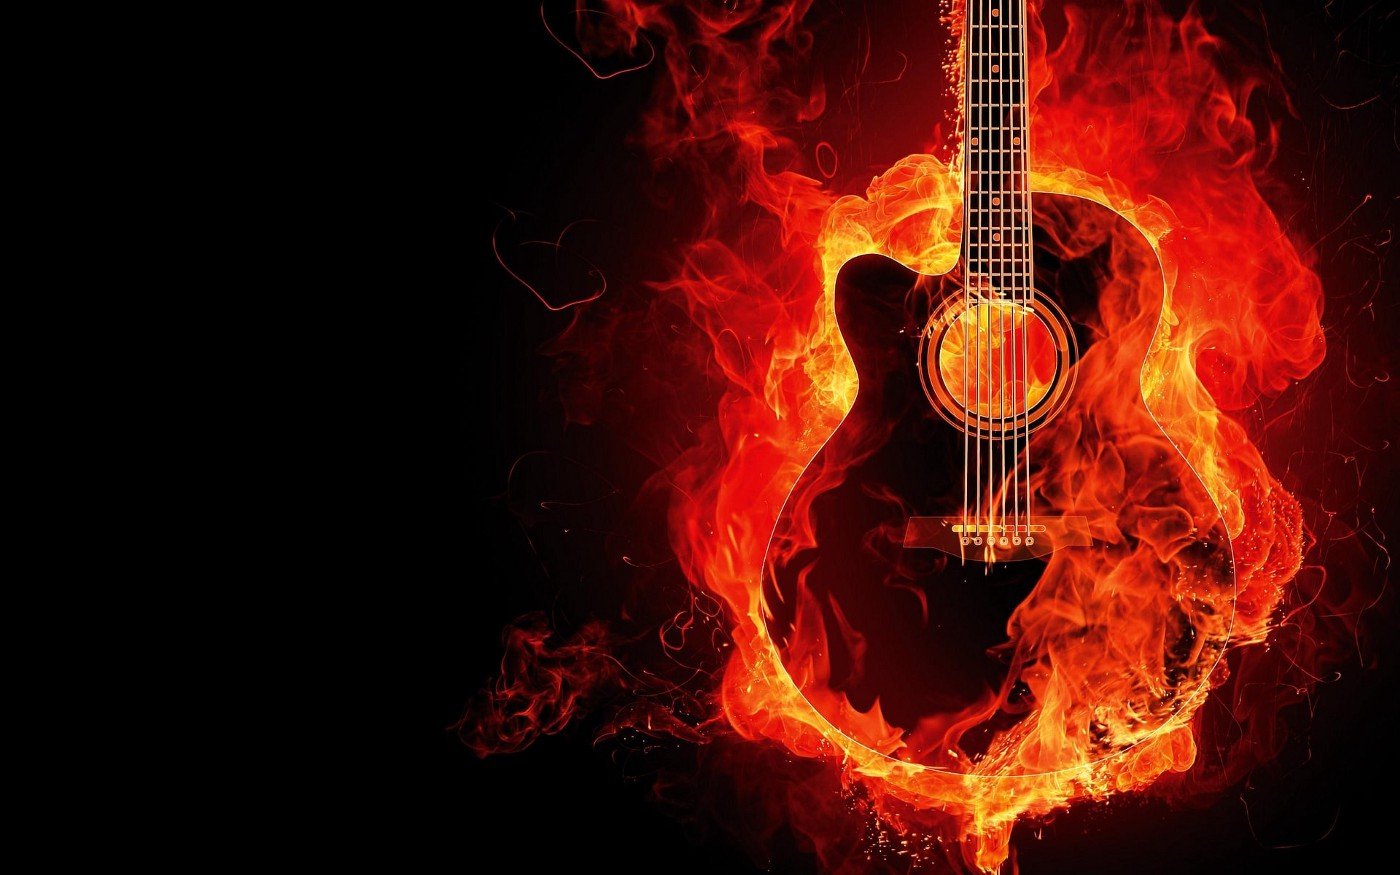 Image of an Acoustic 6 string guitar set on fire and bursting into flames